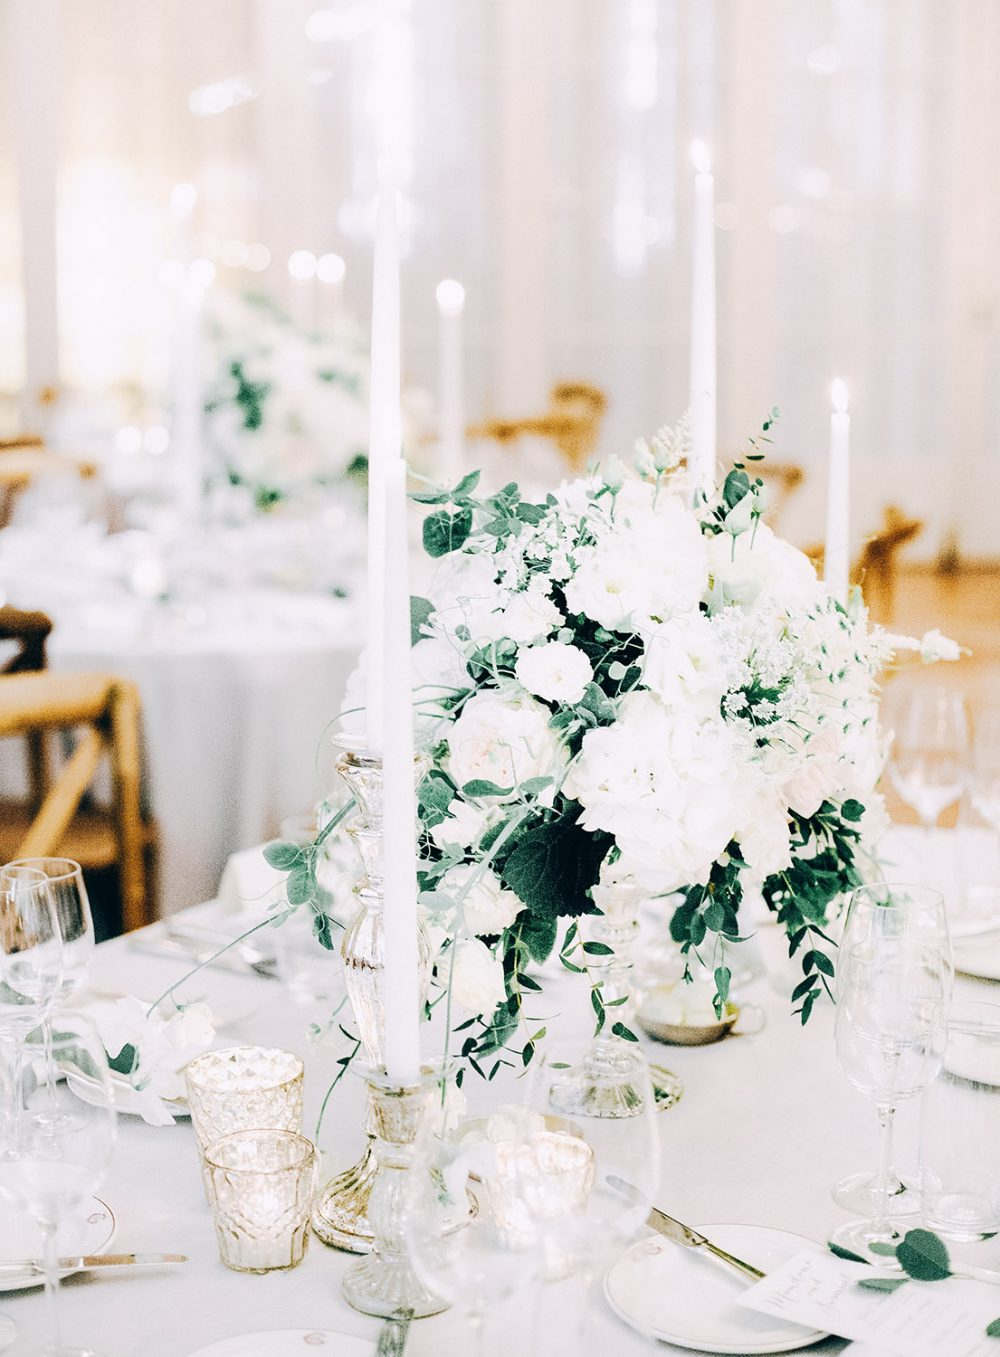 TML Organic Boho Wedding Destination Switzerland Floral Design Event Styling Eucalyptus Grandhotel Giessbach Brienz Hochzeitsdekoration Reception Centerpiece Tabea Maria-Lisa White Green